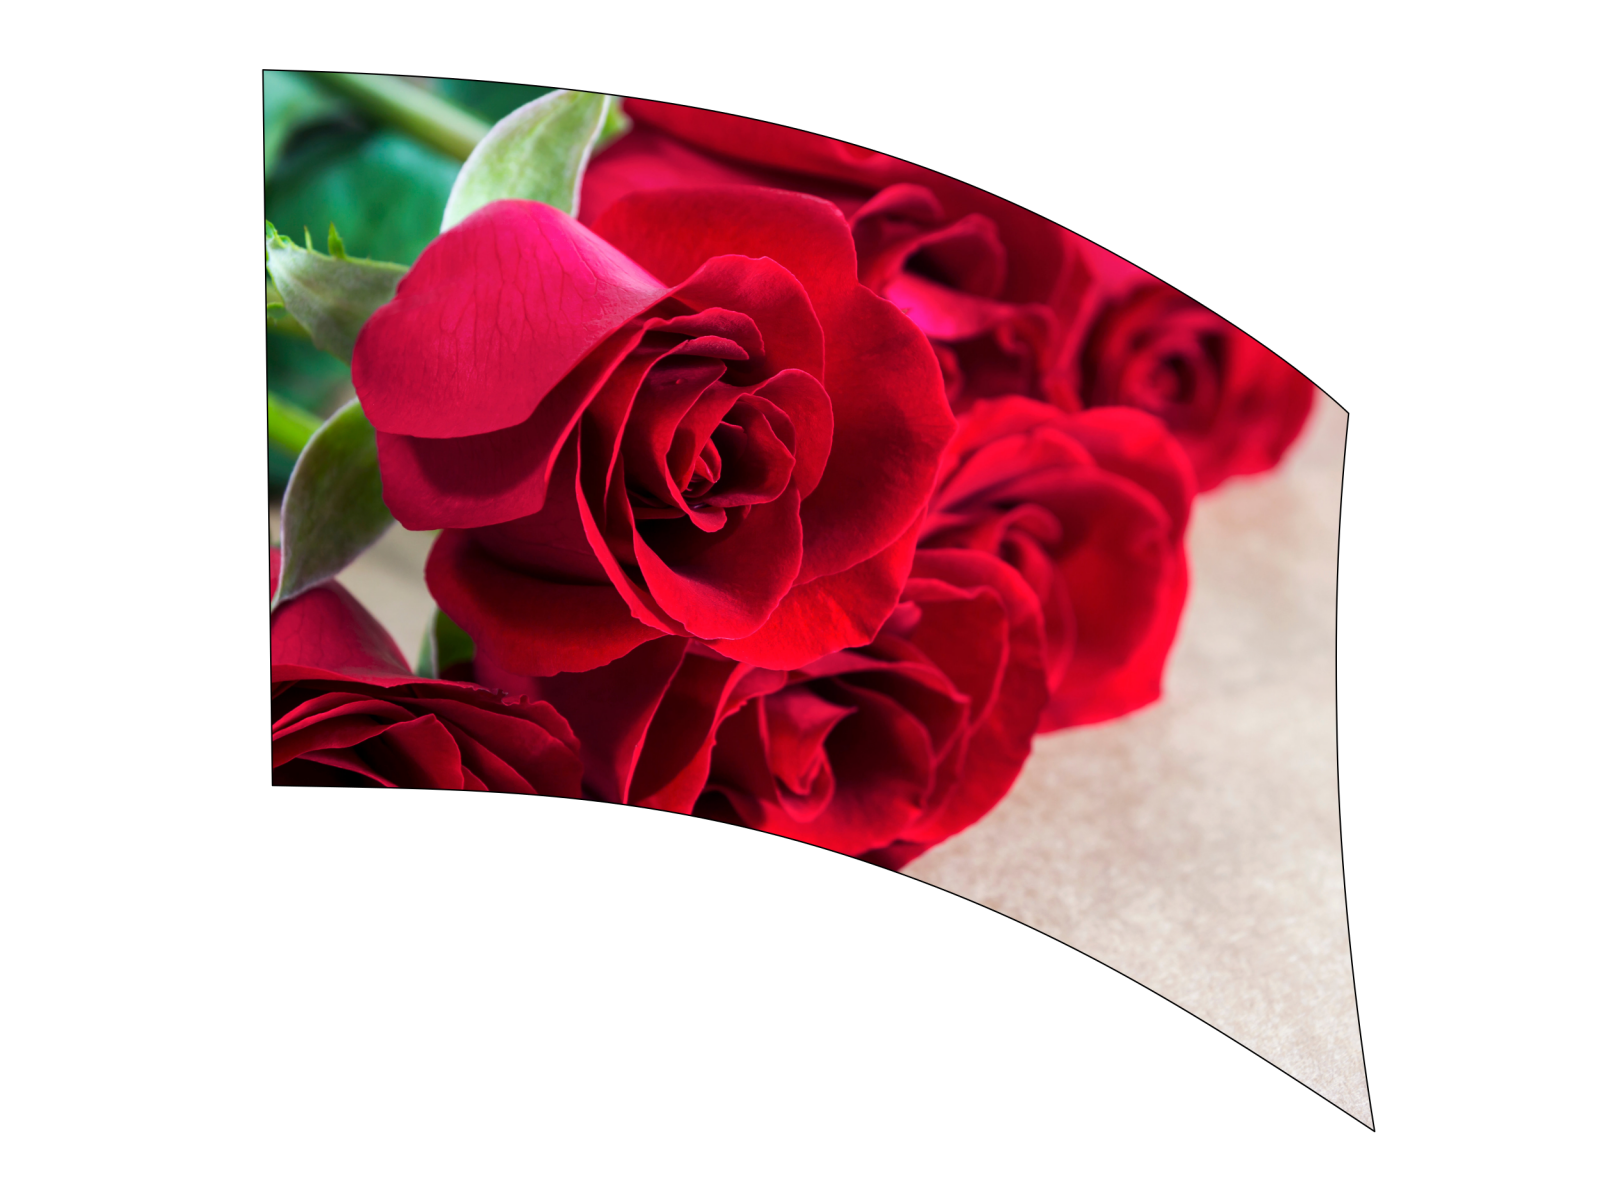 070211s - 36x52 Standard Red Rose